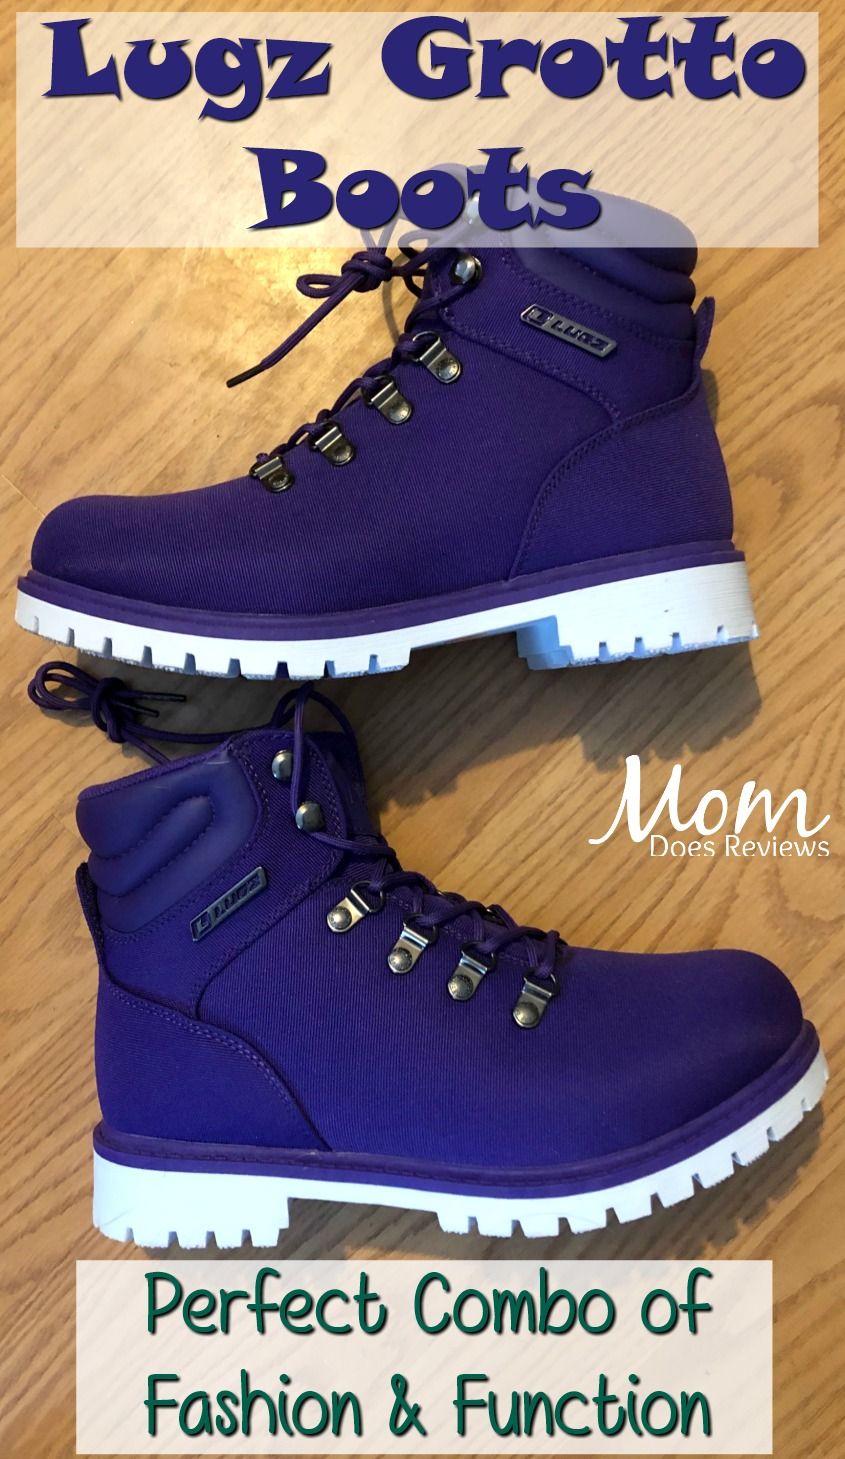 Lugz Grotto Boots for her0 Perfect Combination of Fashion and Function #sweet2019 #fashion #boots #purple #lugz